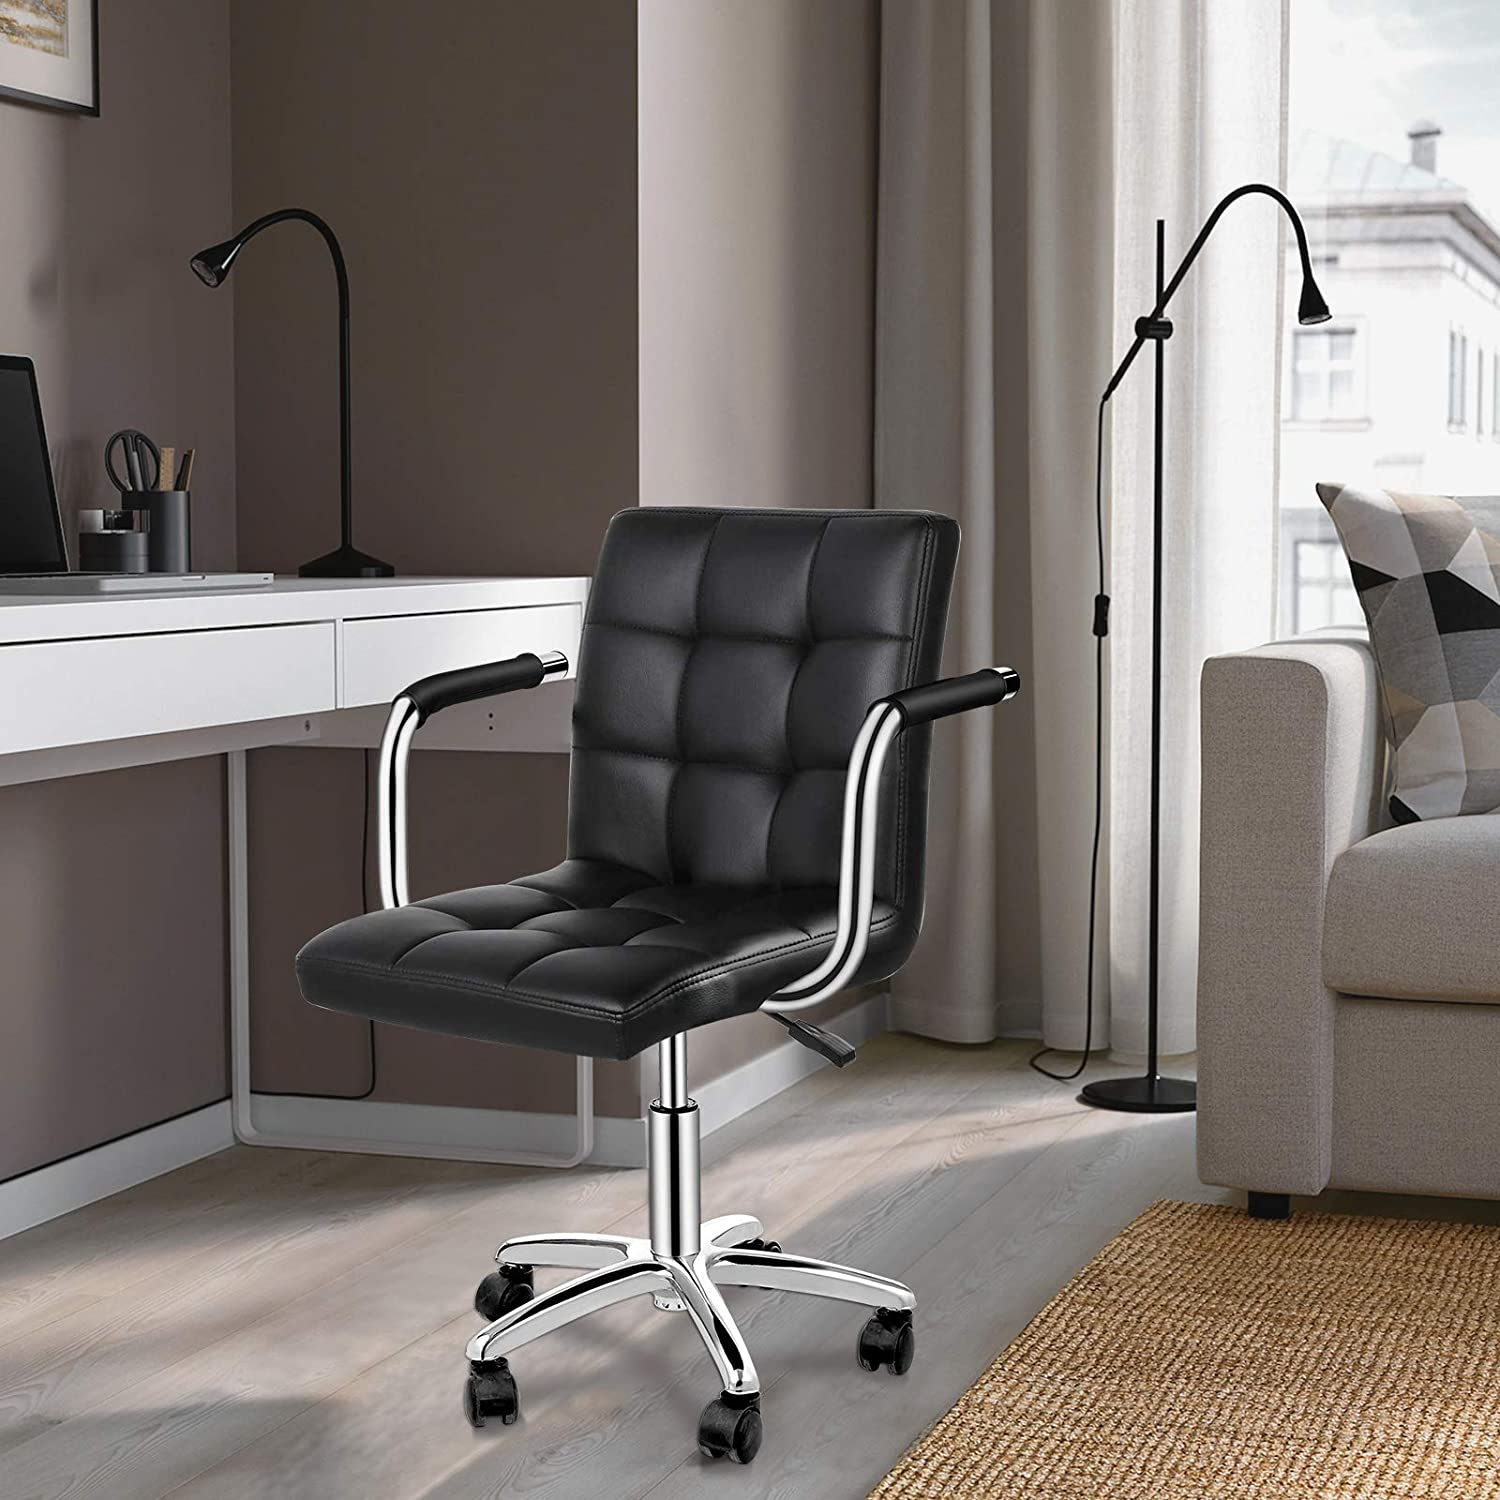 Houssem Home Ranking TOP7 Dealing full price reduction Office Desk Chair Erg Upholstered Leather PU Modern